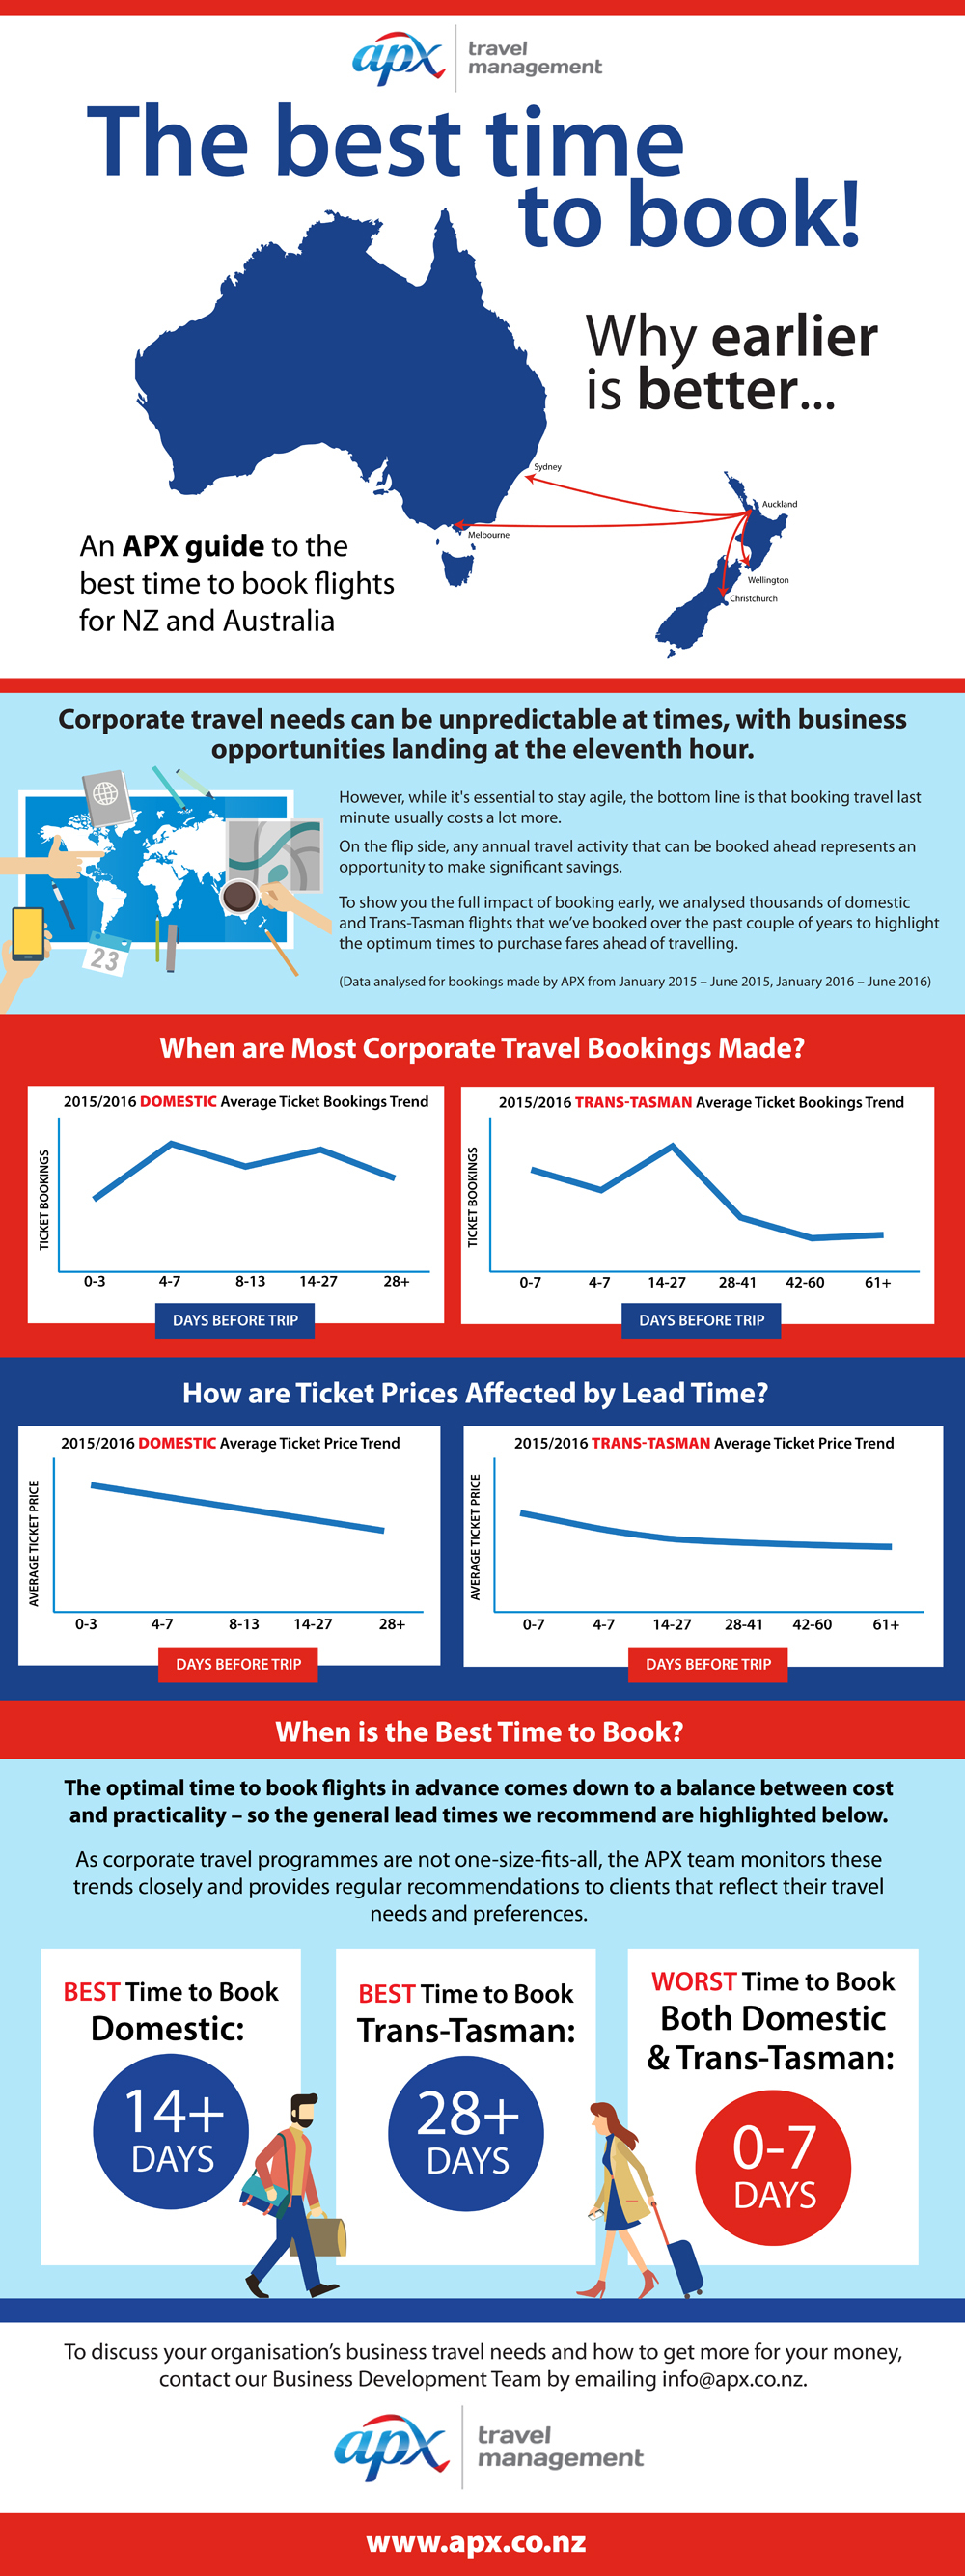 Infographic: Best Time to Book Domestic and Trans-Tasman Flights